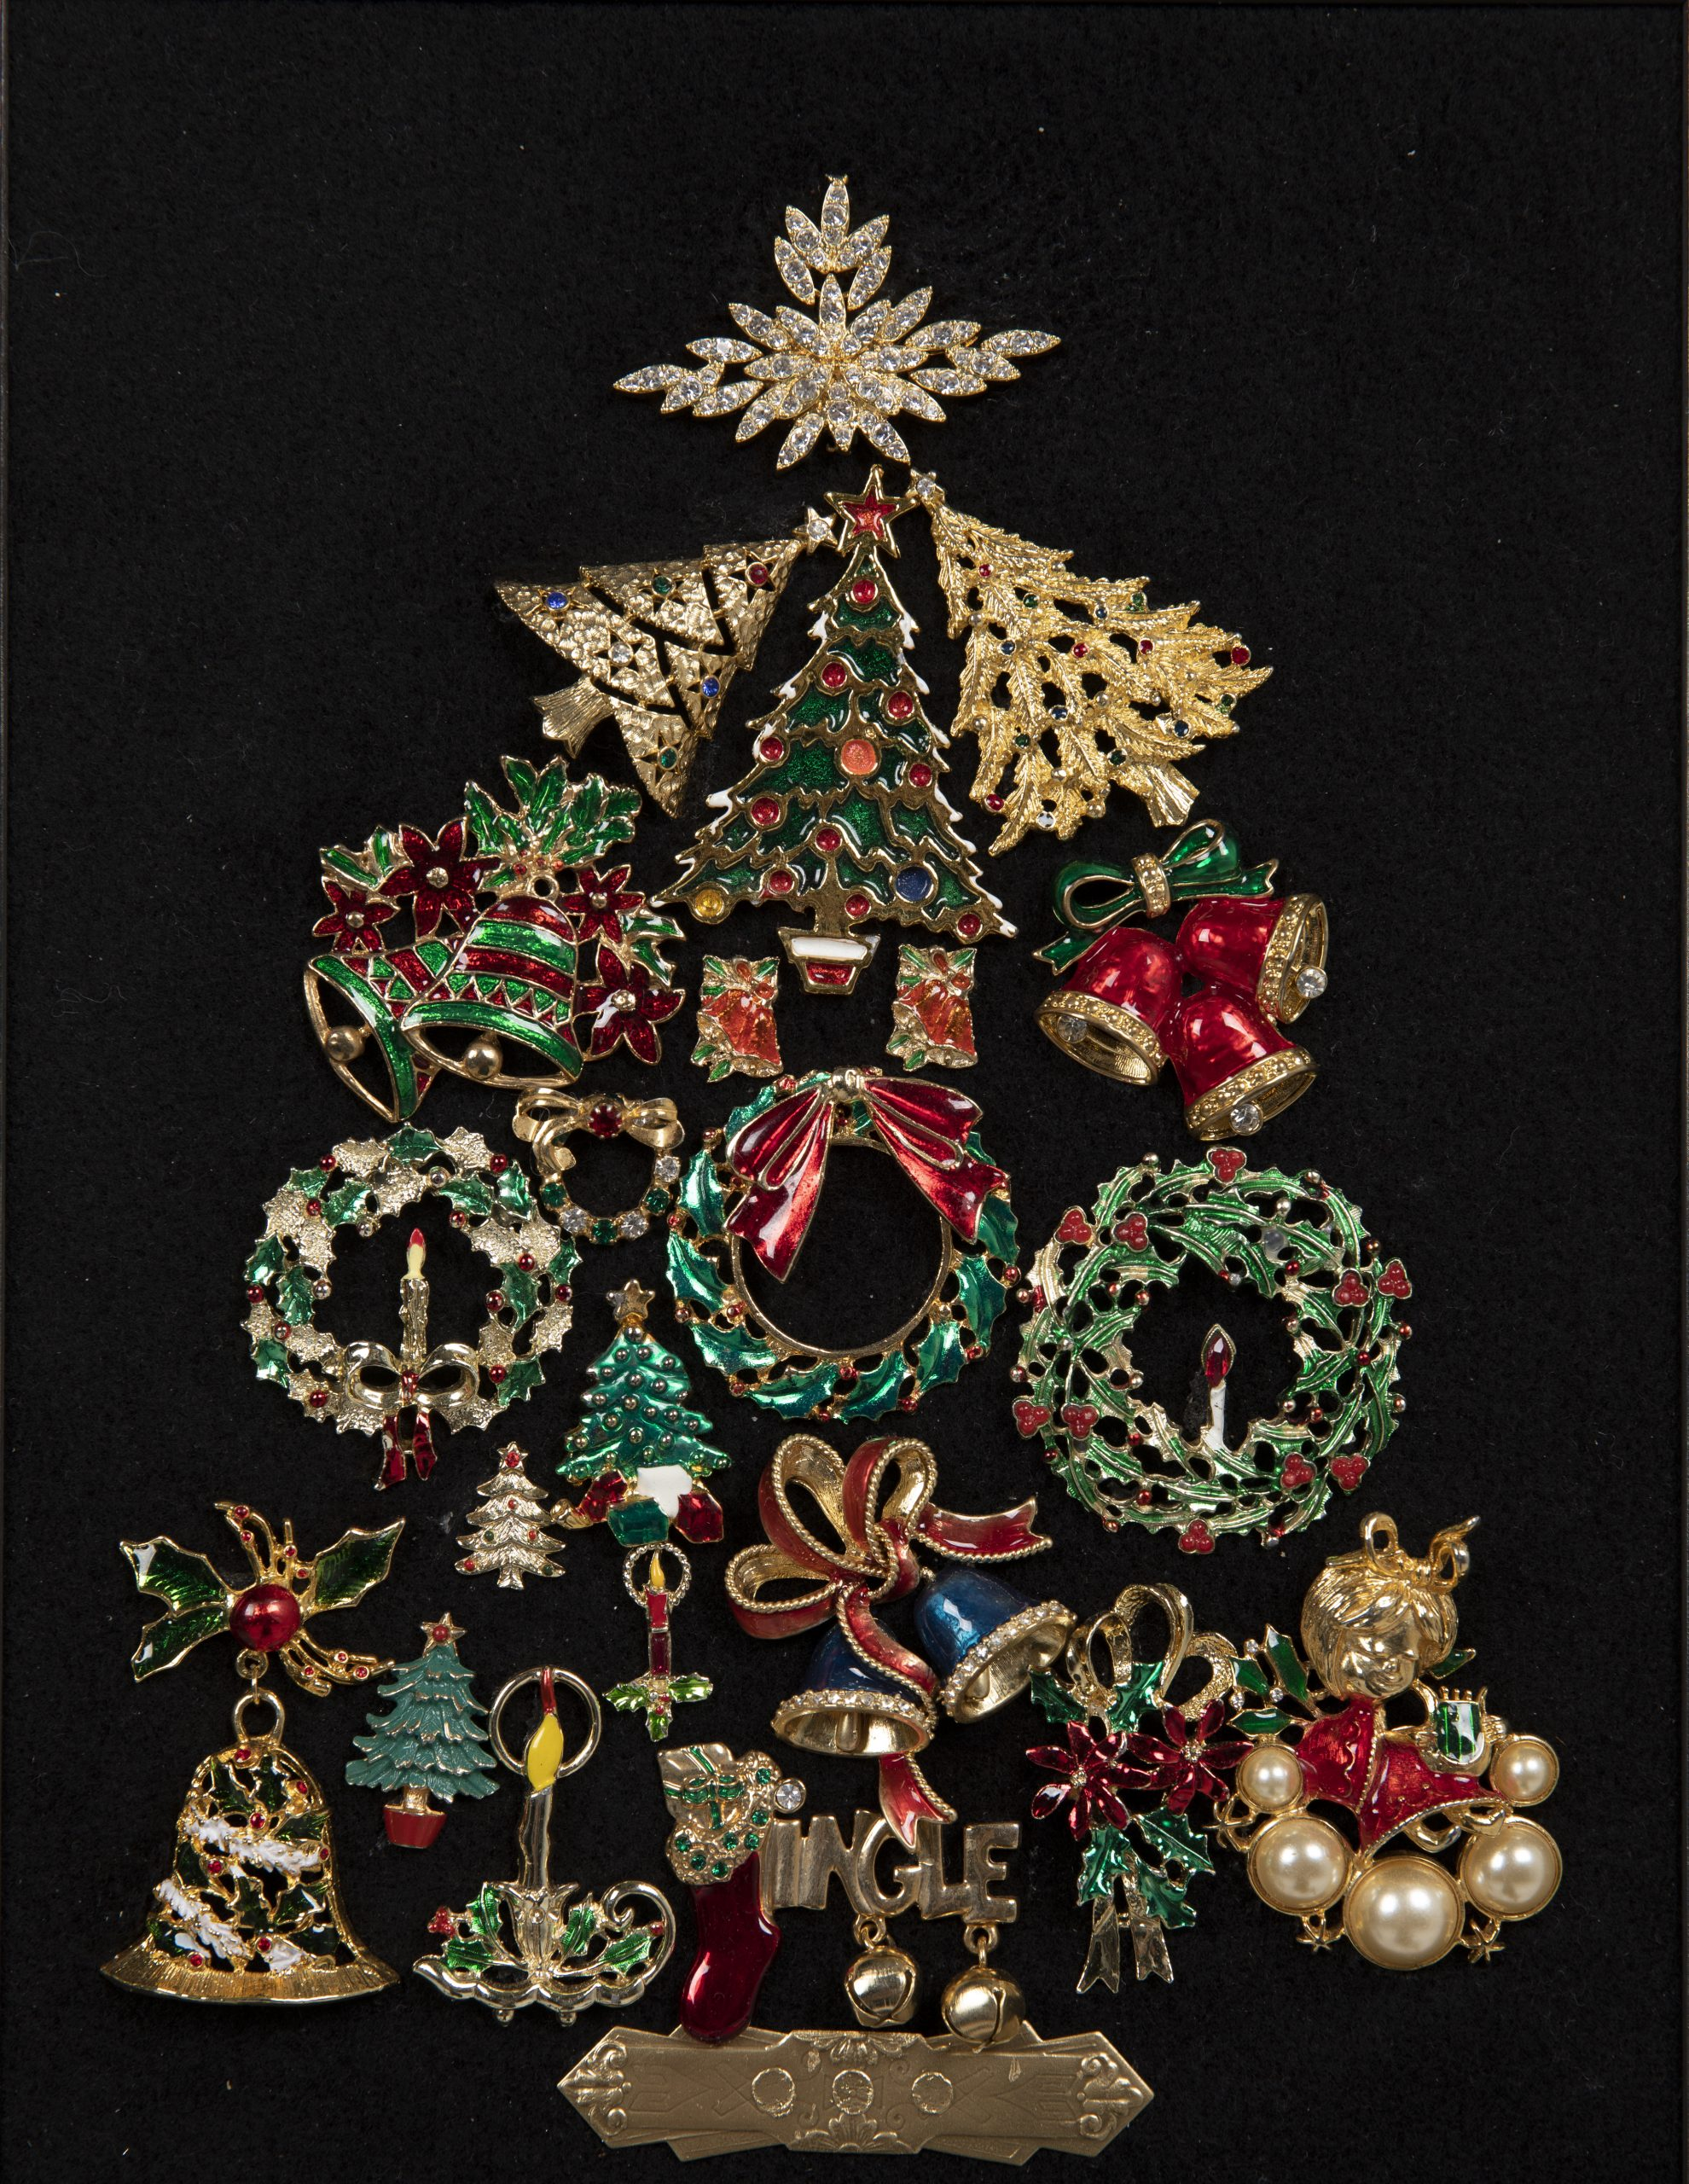 A Christmas tree created out of Christmas themed pins in a tree shape on a black background.